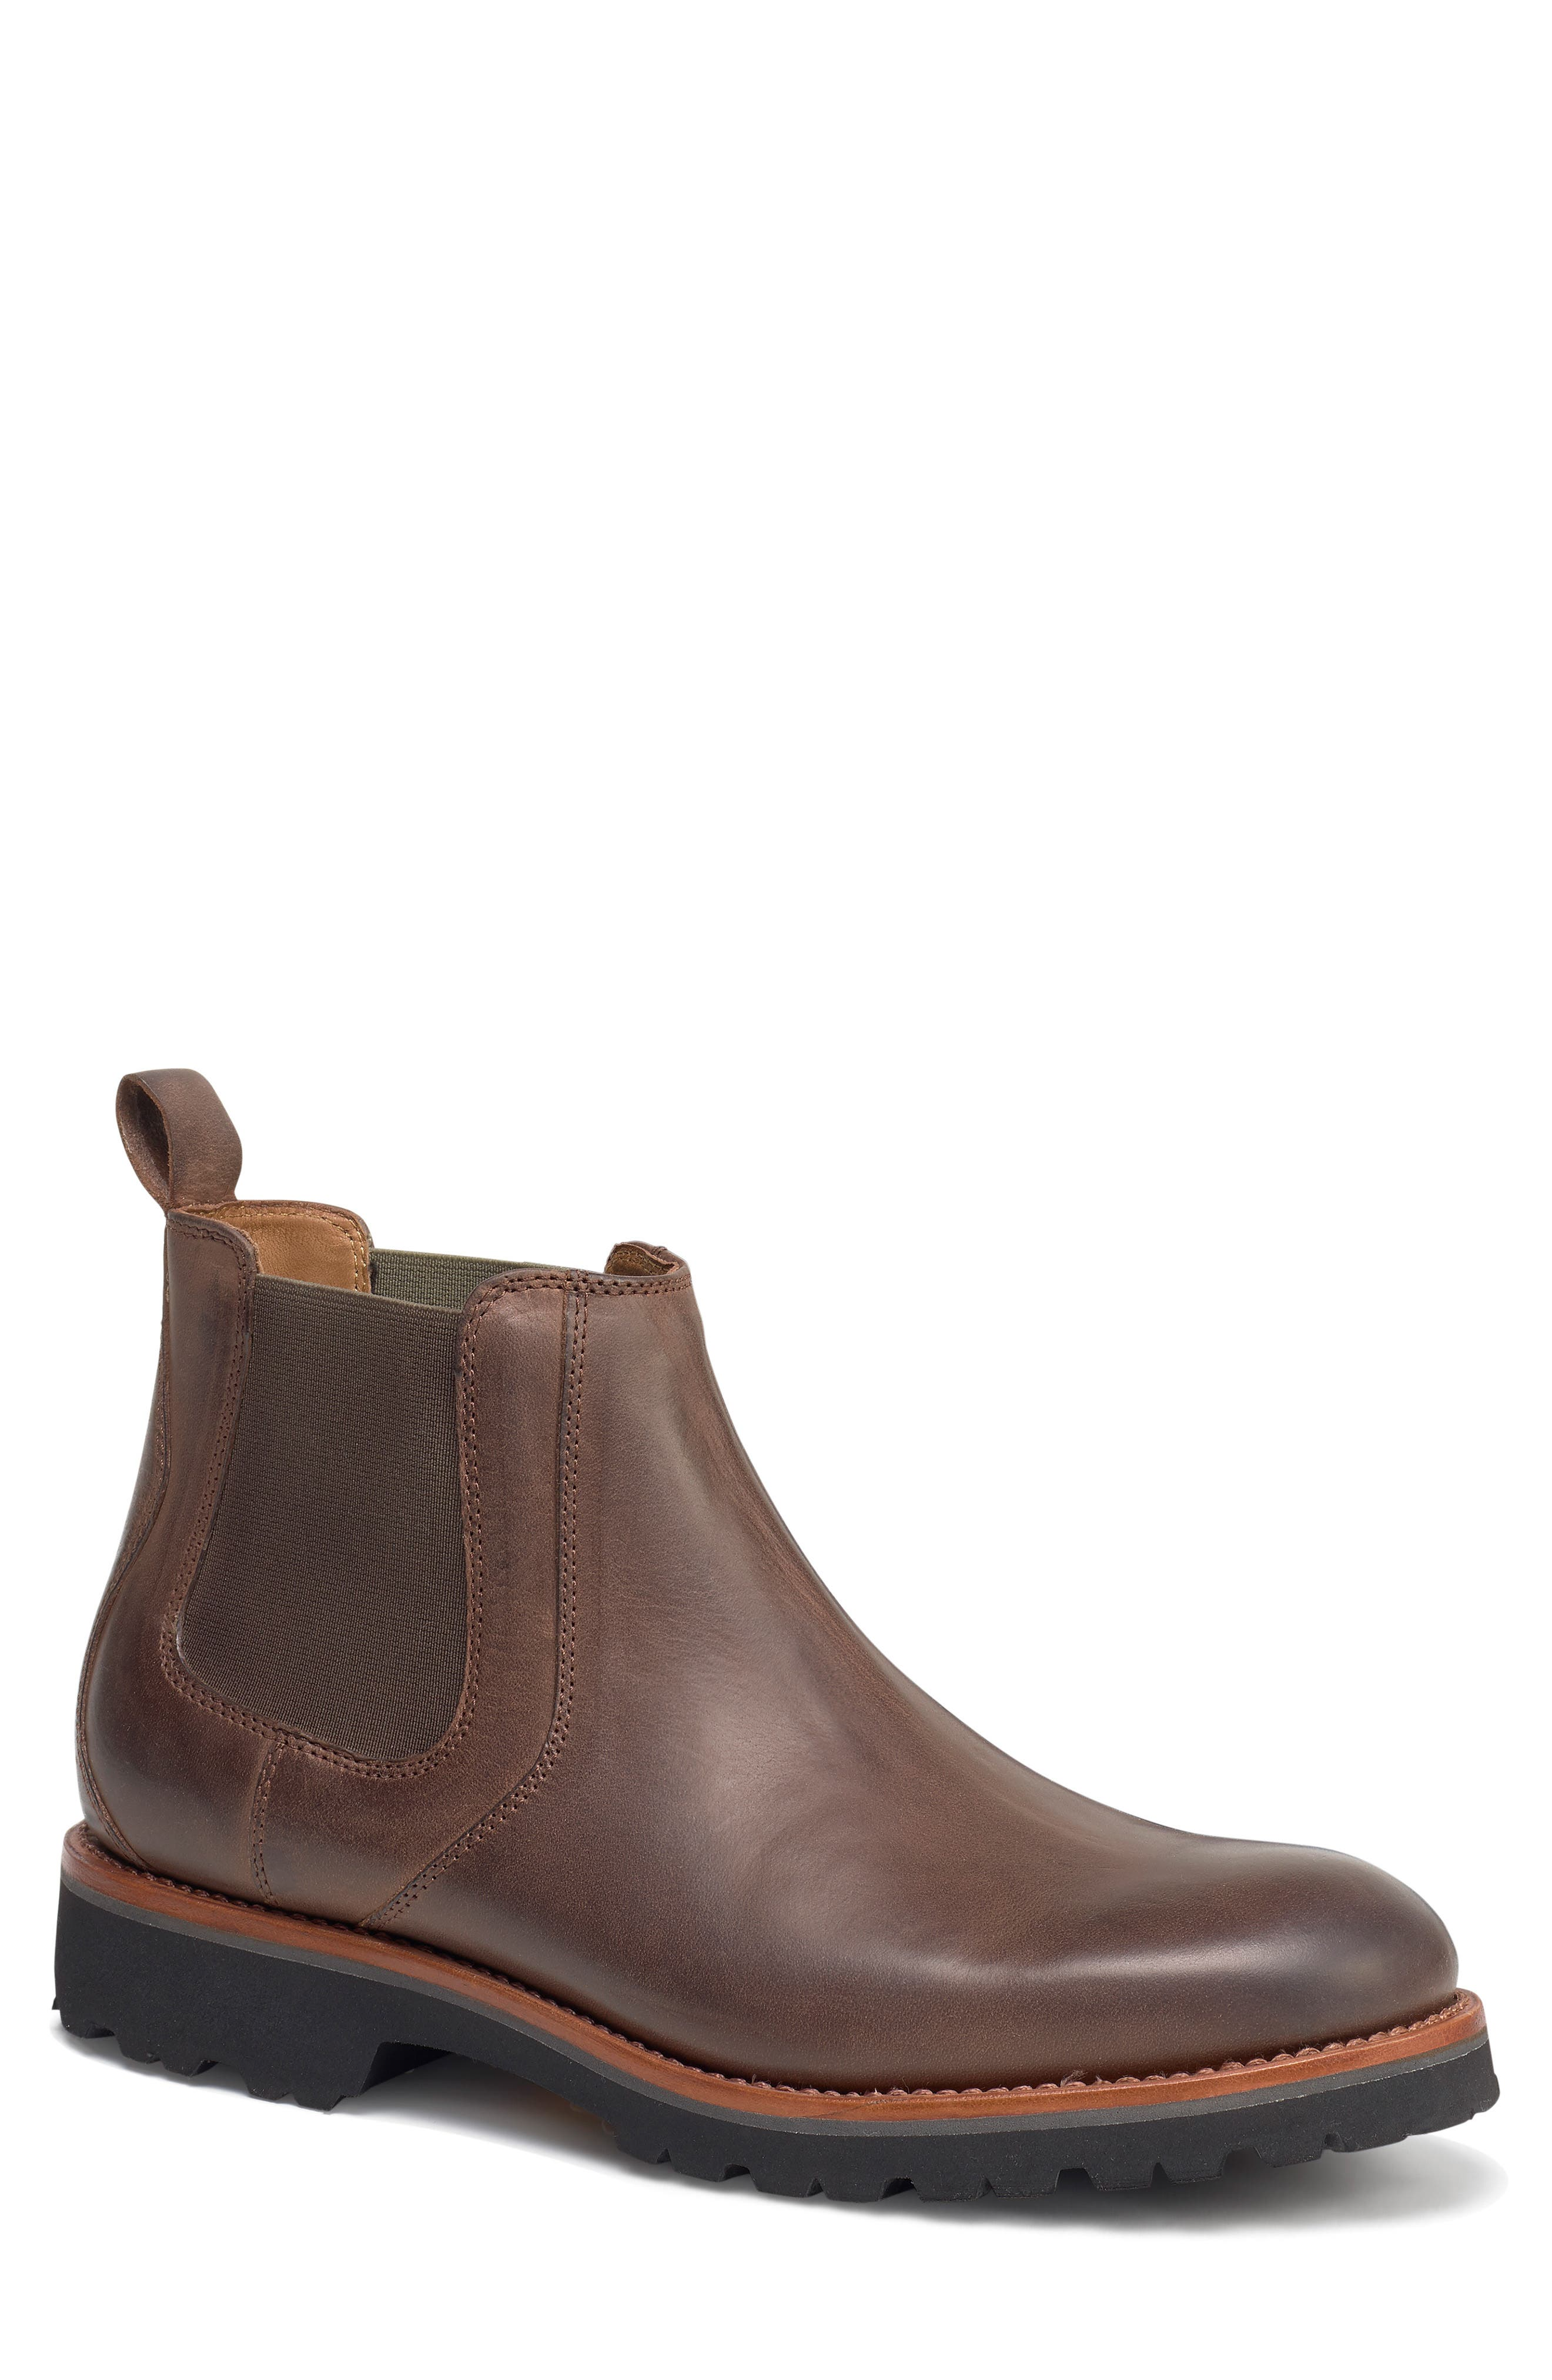 Trask Hastings Lugged Chelsea Boot, Brown